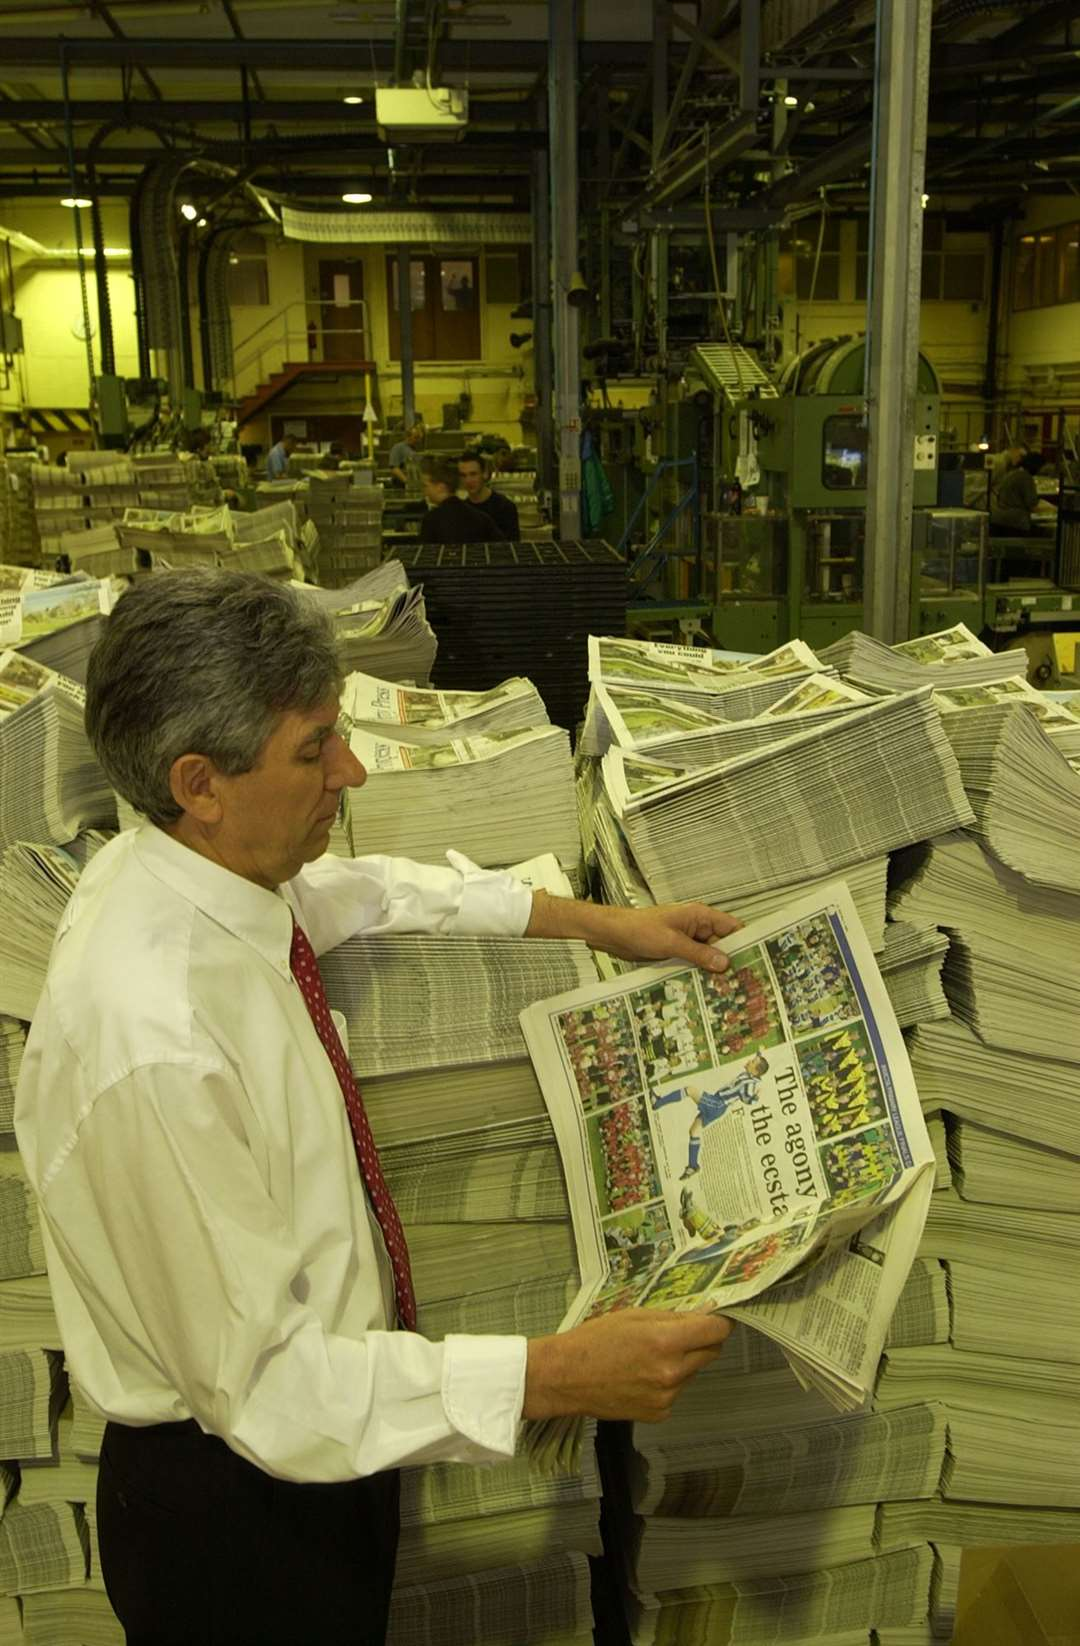 Ron Green in the press hall at the KM headquarters in Larkfield